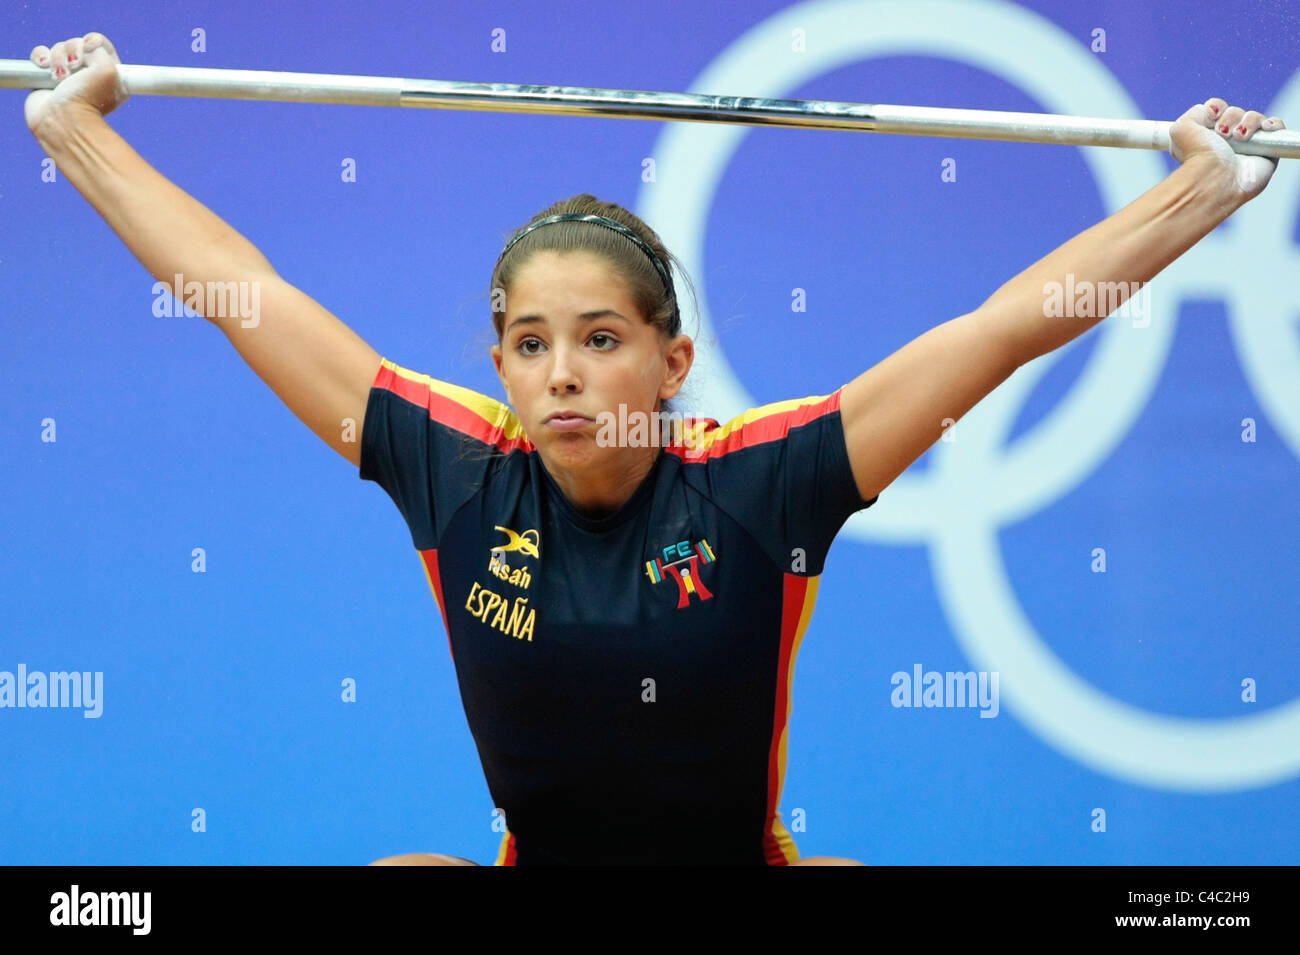 Spain's Atenery Hernandez in action during her snatch routine. - Stock Image